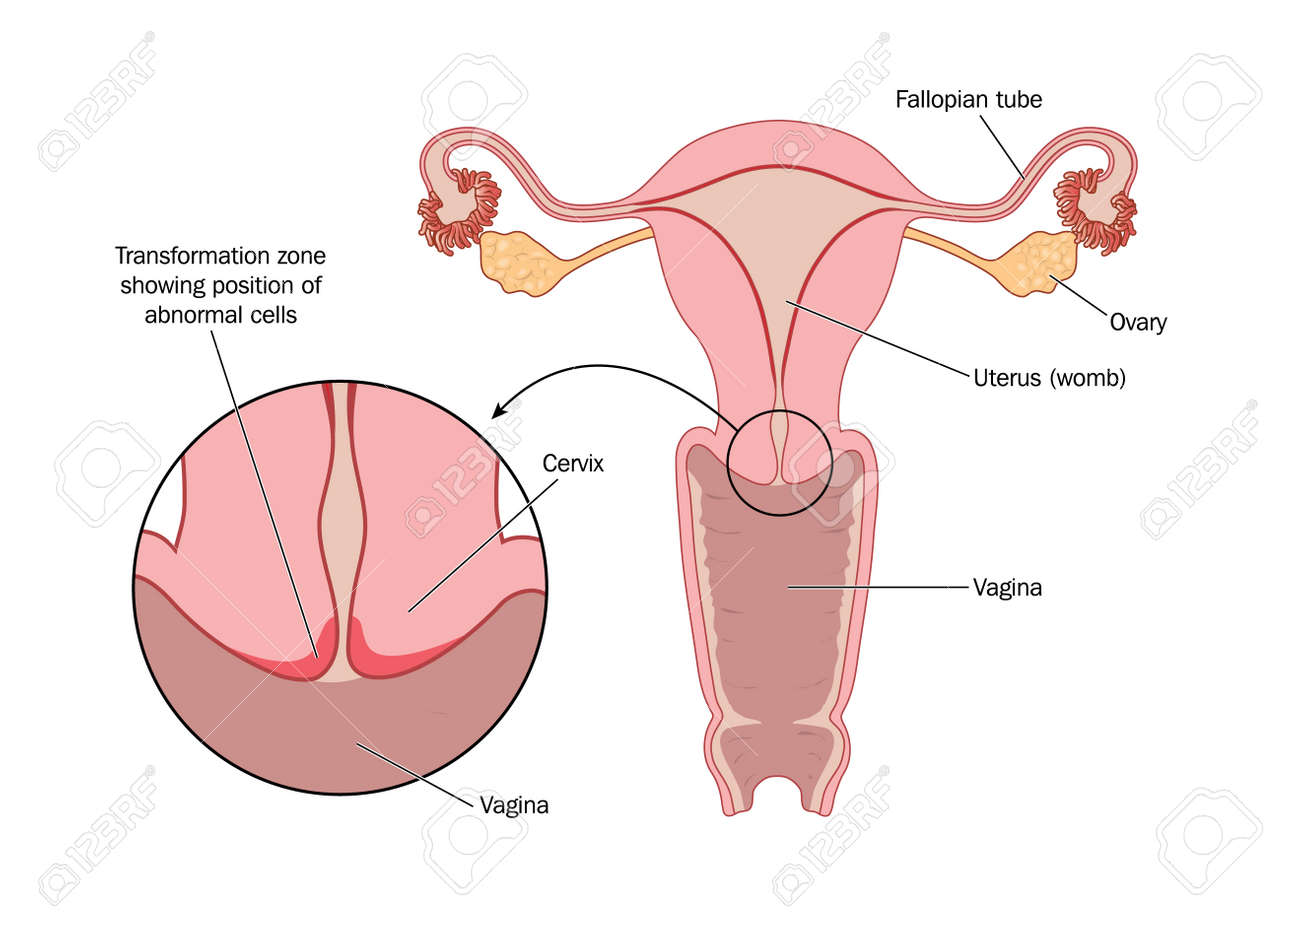 2041 cervix stock illustrations cliparts and royalty free cervix transformation zone of cervix illustration ccuart Image collections